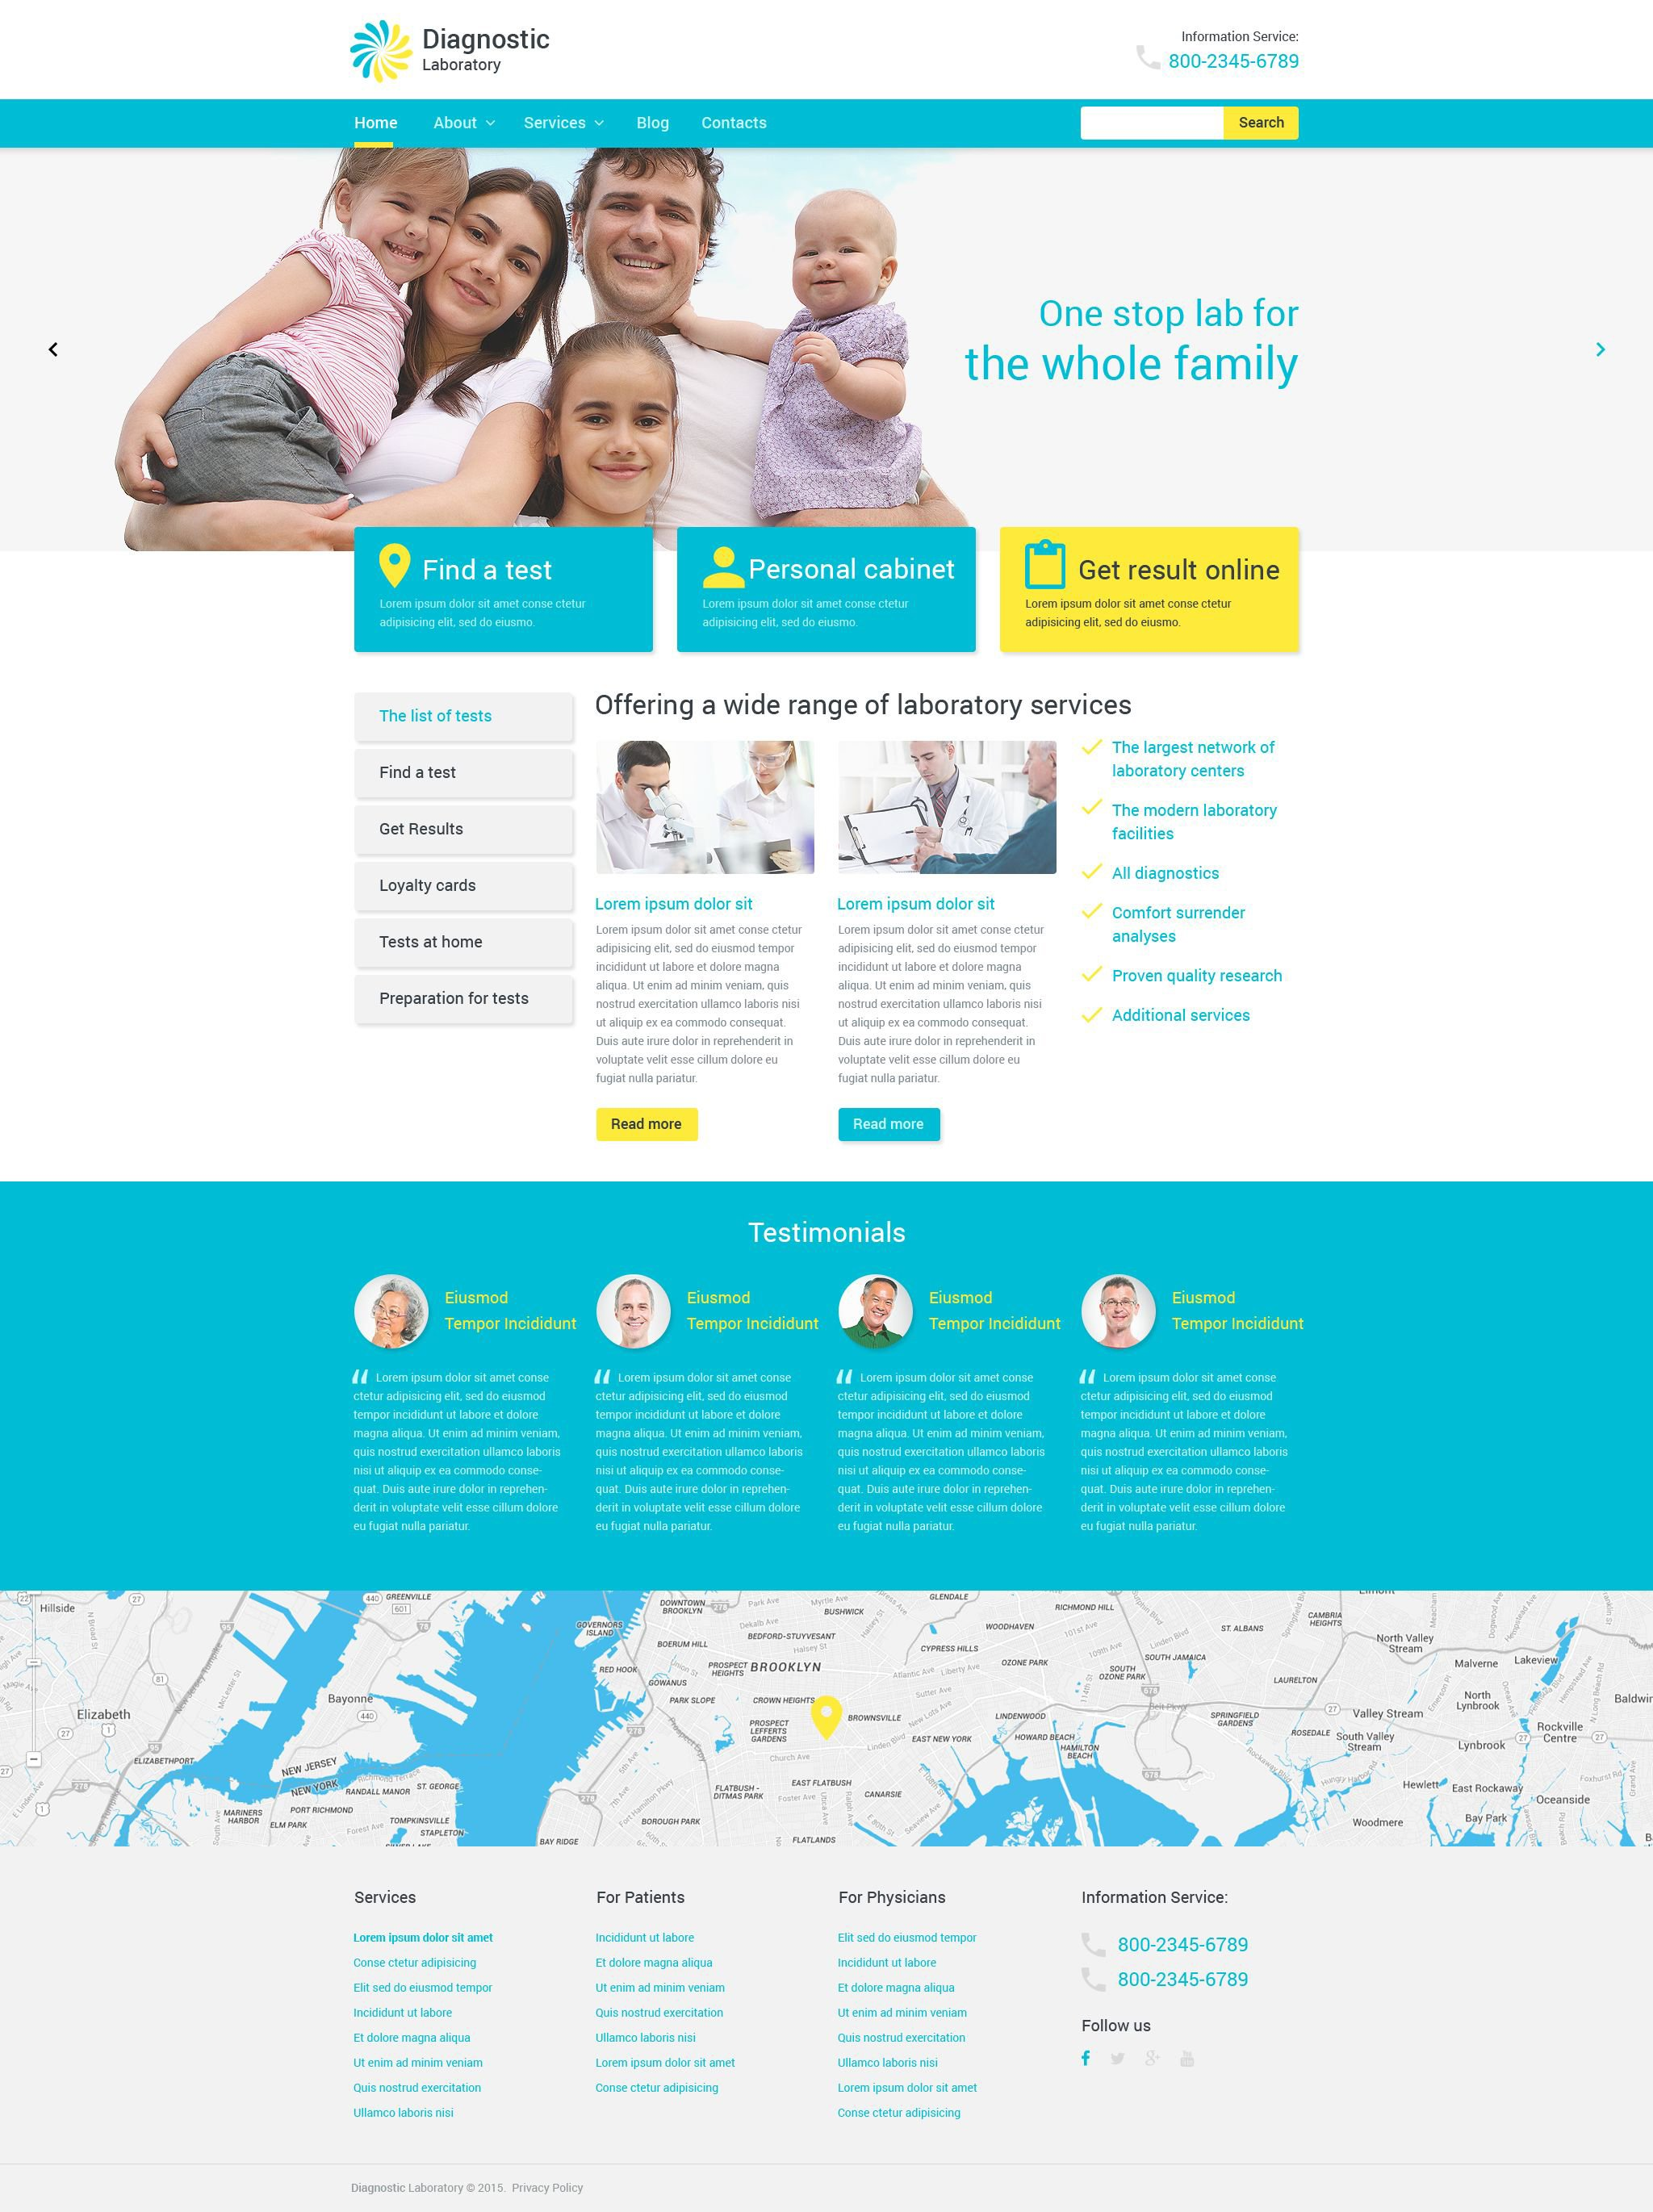 The Diagnostic Medical Clinic WordPress Design 53983, one of the best WordPress themes of its kind (business, most popular), also known as diagnostic medical clinic WordPress template, doctor WordPress template, services WordPress template, client WordPress template, testimonials WordPress template, body WordPress template, help WordPress template, inspection WordPress template, equipment WordPress template, patients WordPress template, medicine WordPress template, healthcare WordPress template, surgery WordPress template, science WordPress template, laboratory WordPress template, drugs WordPress template, pills WordPress template, nurse WordPress template, cure WordPress template, vaccine WordPress template, treatment WordPress template, oncology WordPress template, prescription WordPress template, pharmaceutical WordPress template, disease WordPress template, illness WordPress template, vitam and related with diagnostic medical clinic, doctor, services, client, testimonials, body, help, inspection, equipment, patients, medicine, healthcare, surgery, science, laboratory, drugs, pills, nurse, cure, vaccine, treatment, oncology, prescription, pharmaceutical, disease, illness, vitam, etc.